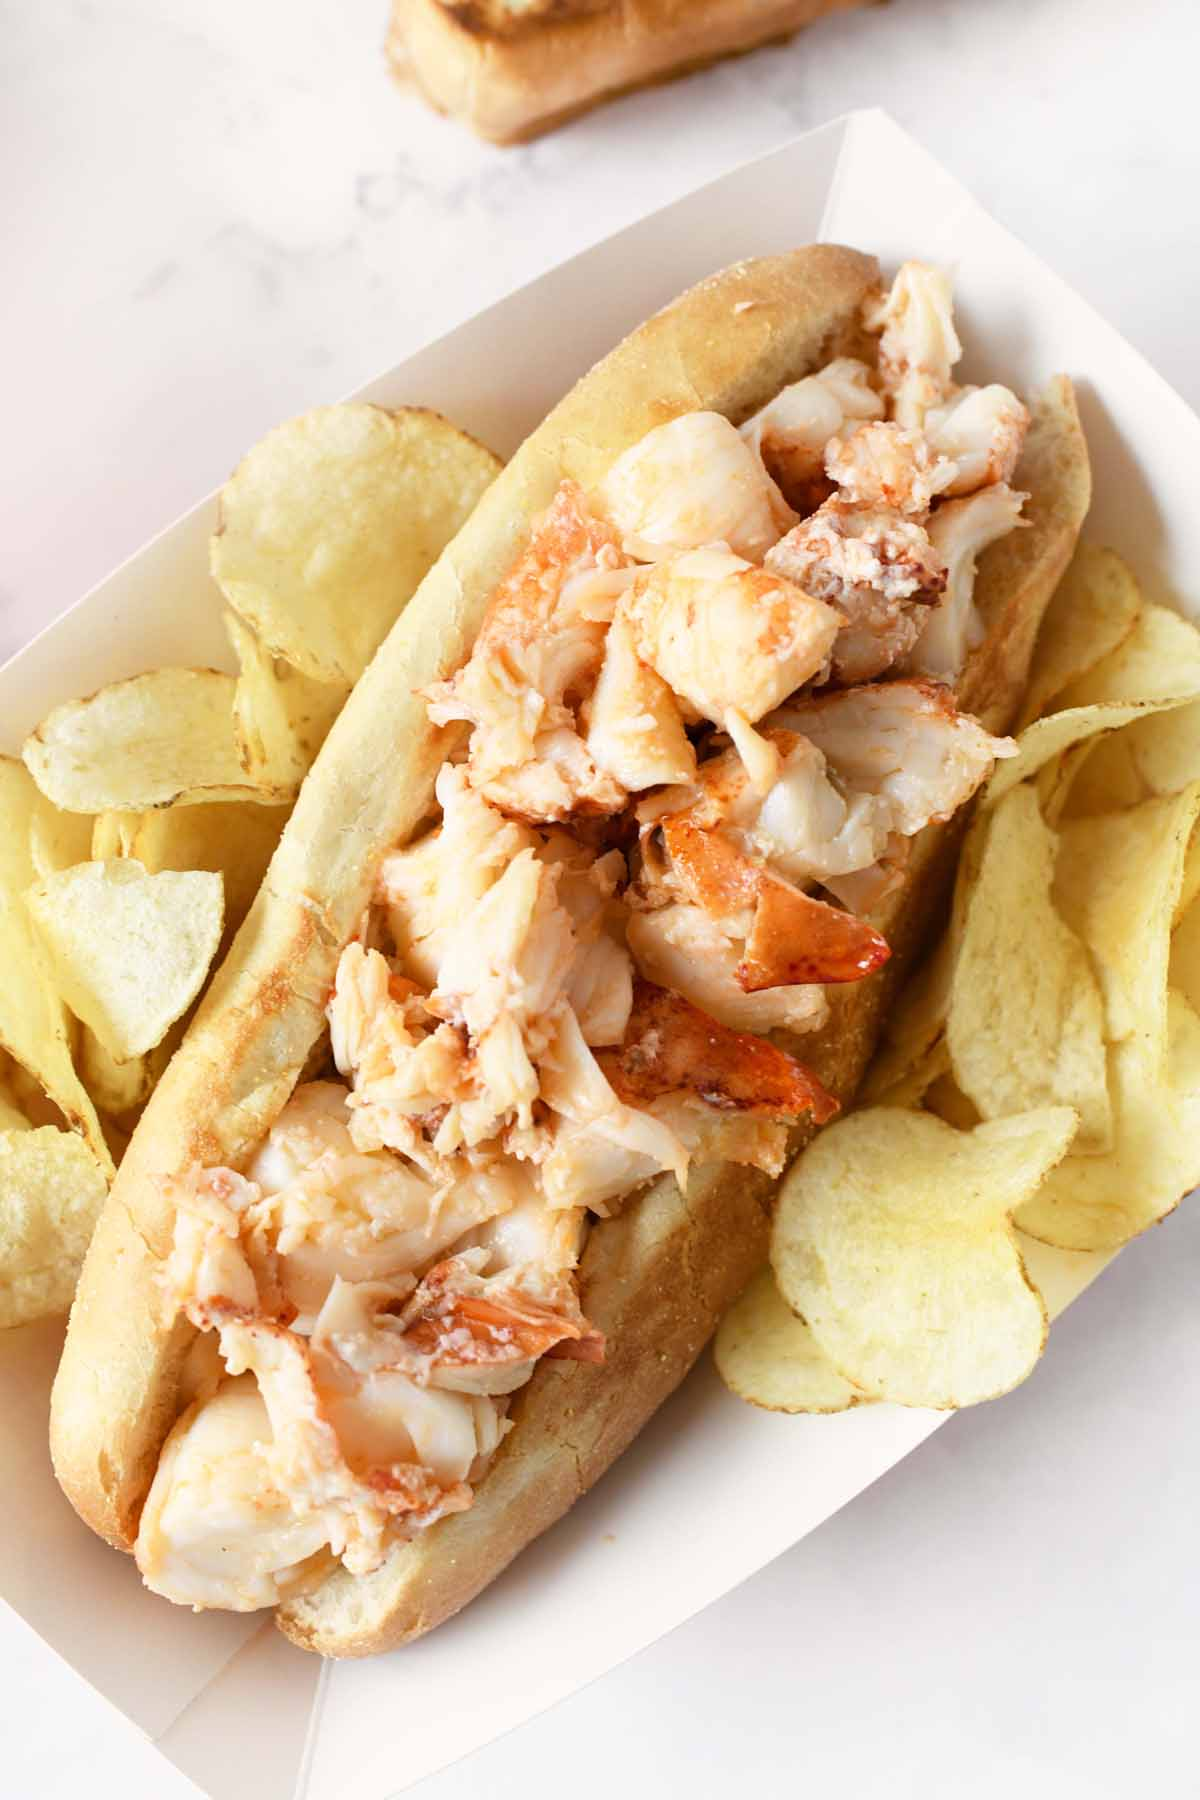 Buttered Lobster Roll in a paper plate with potato chips.